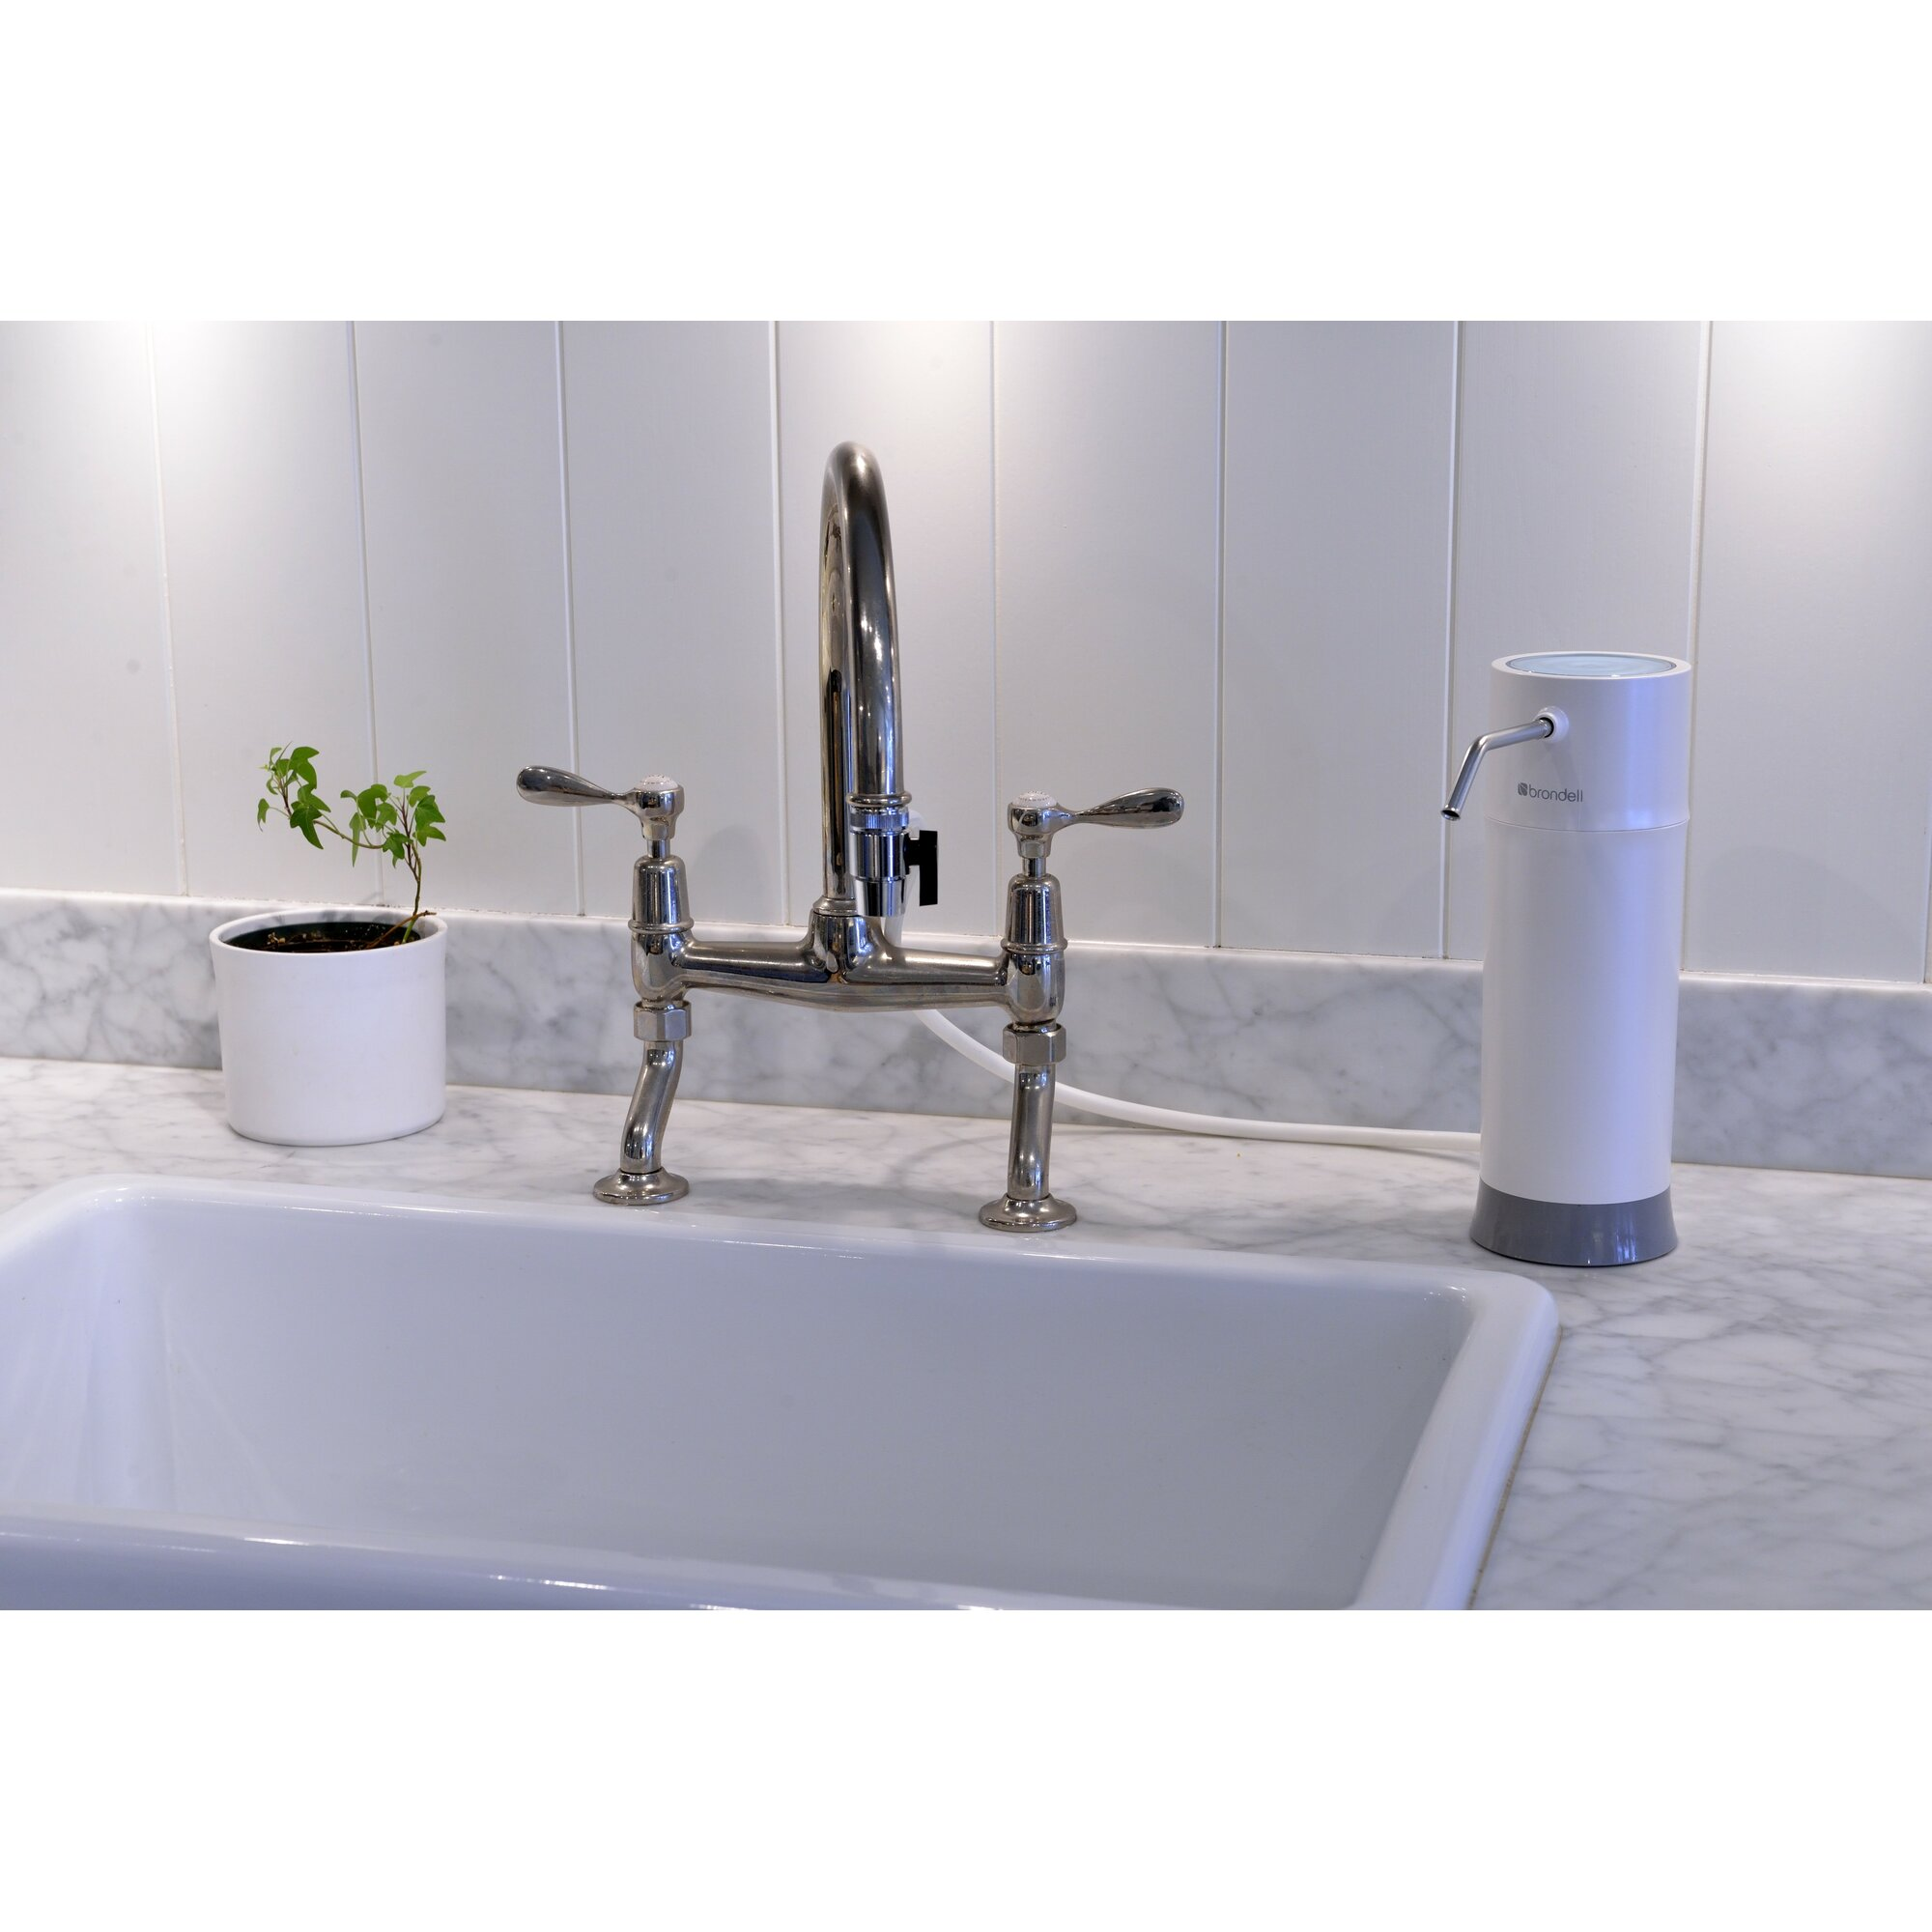 Home Water Filtration Systems Reviews Best Home Water Filter Countertop 25 Home Improvement Ideas Under